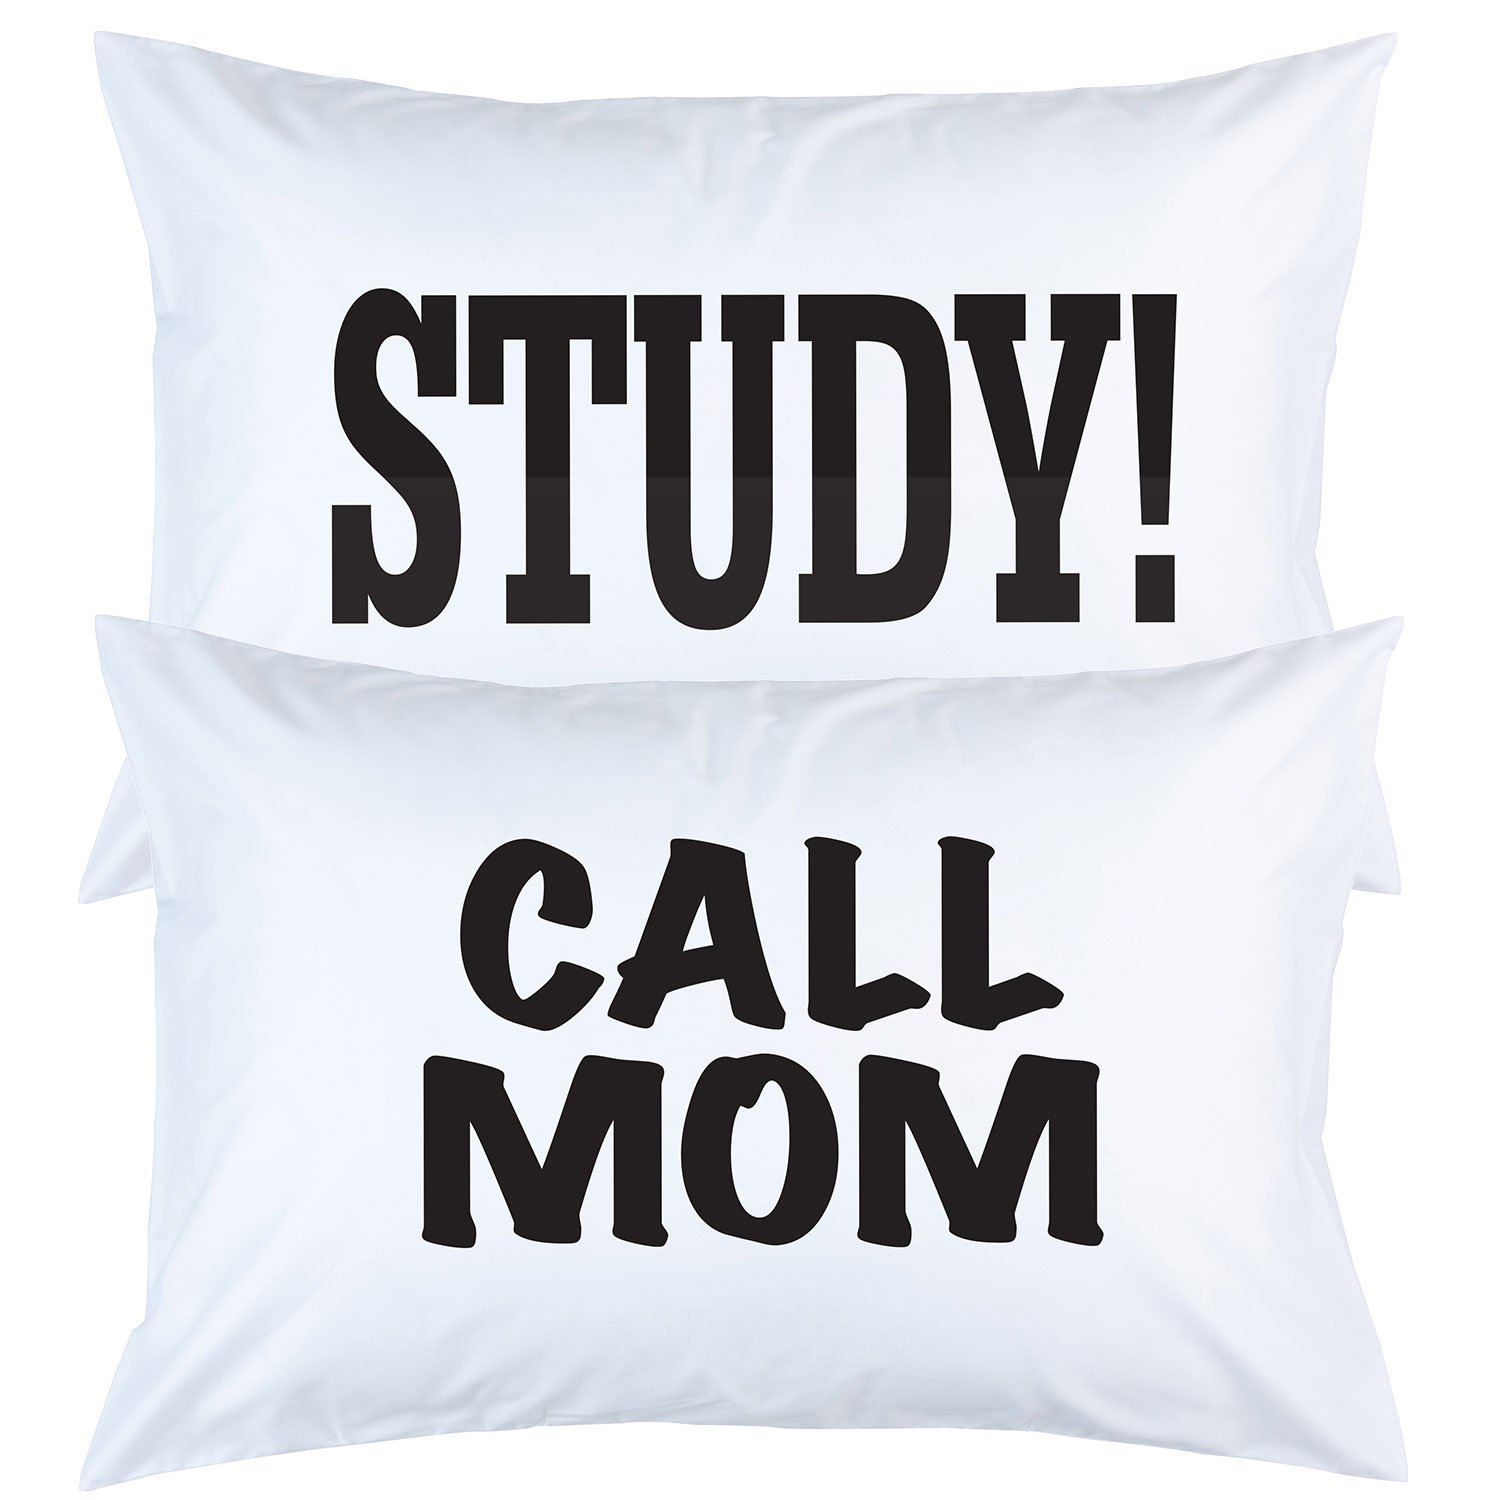 Study or Call Mom Pillow Case Funny Graduation Gifts College Dorm Room Bedding and Accessories for Girls or Boys 2 Sided Print